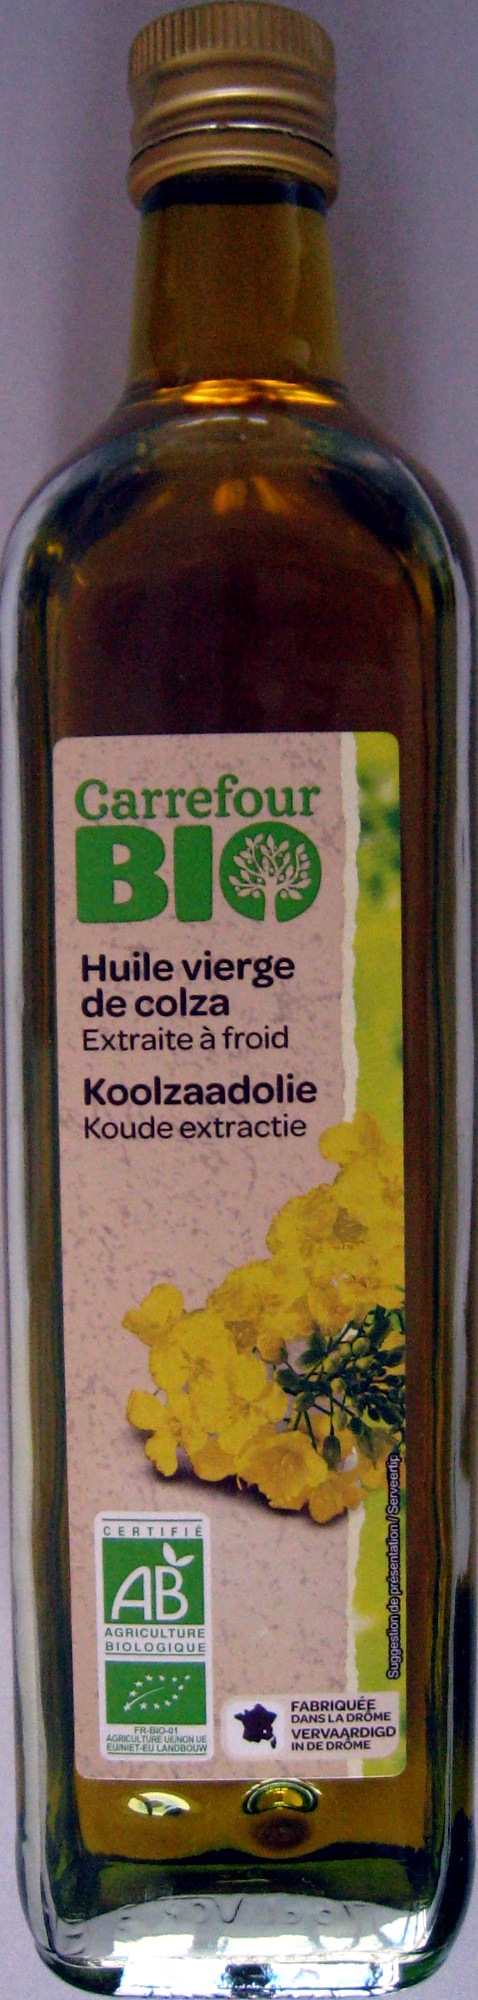 huile vierge de colza extraite froid bio carrefour 75 cl. Black Bedroom Furniture Sets. Home Design Ideas